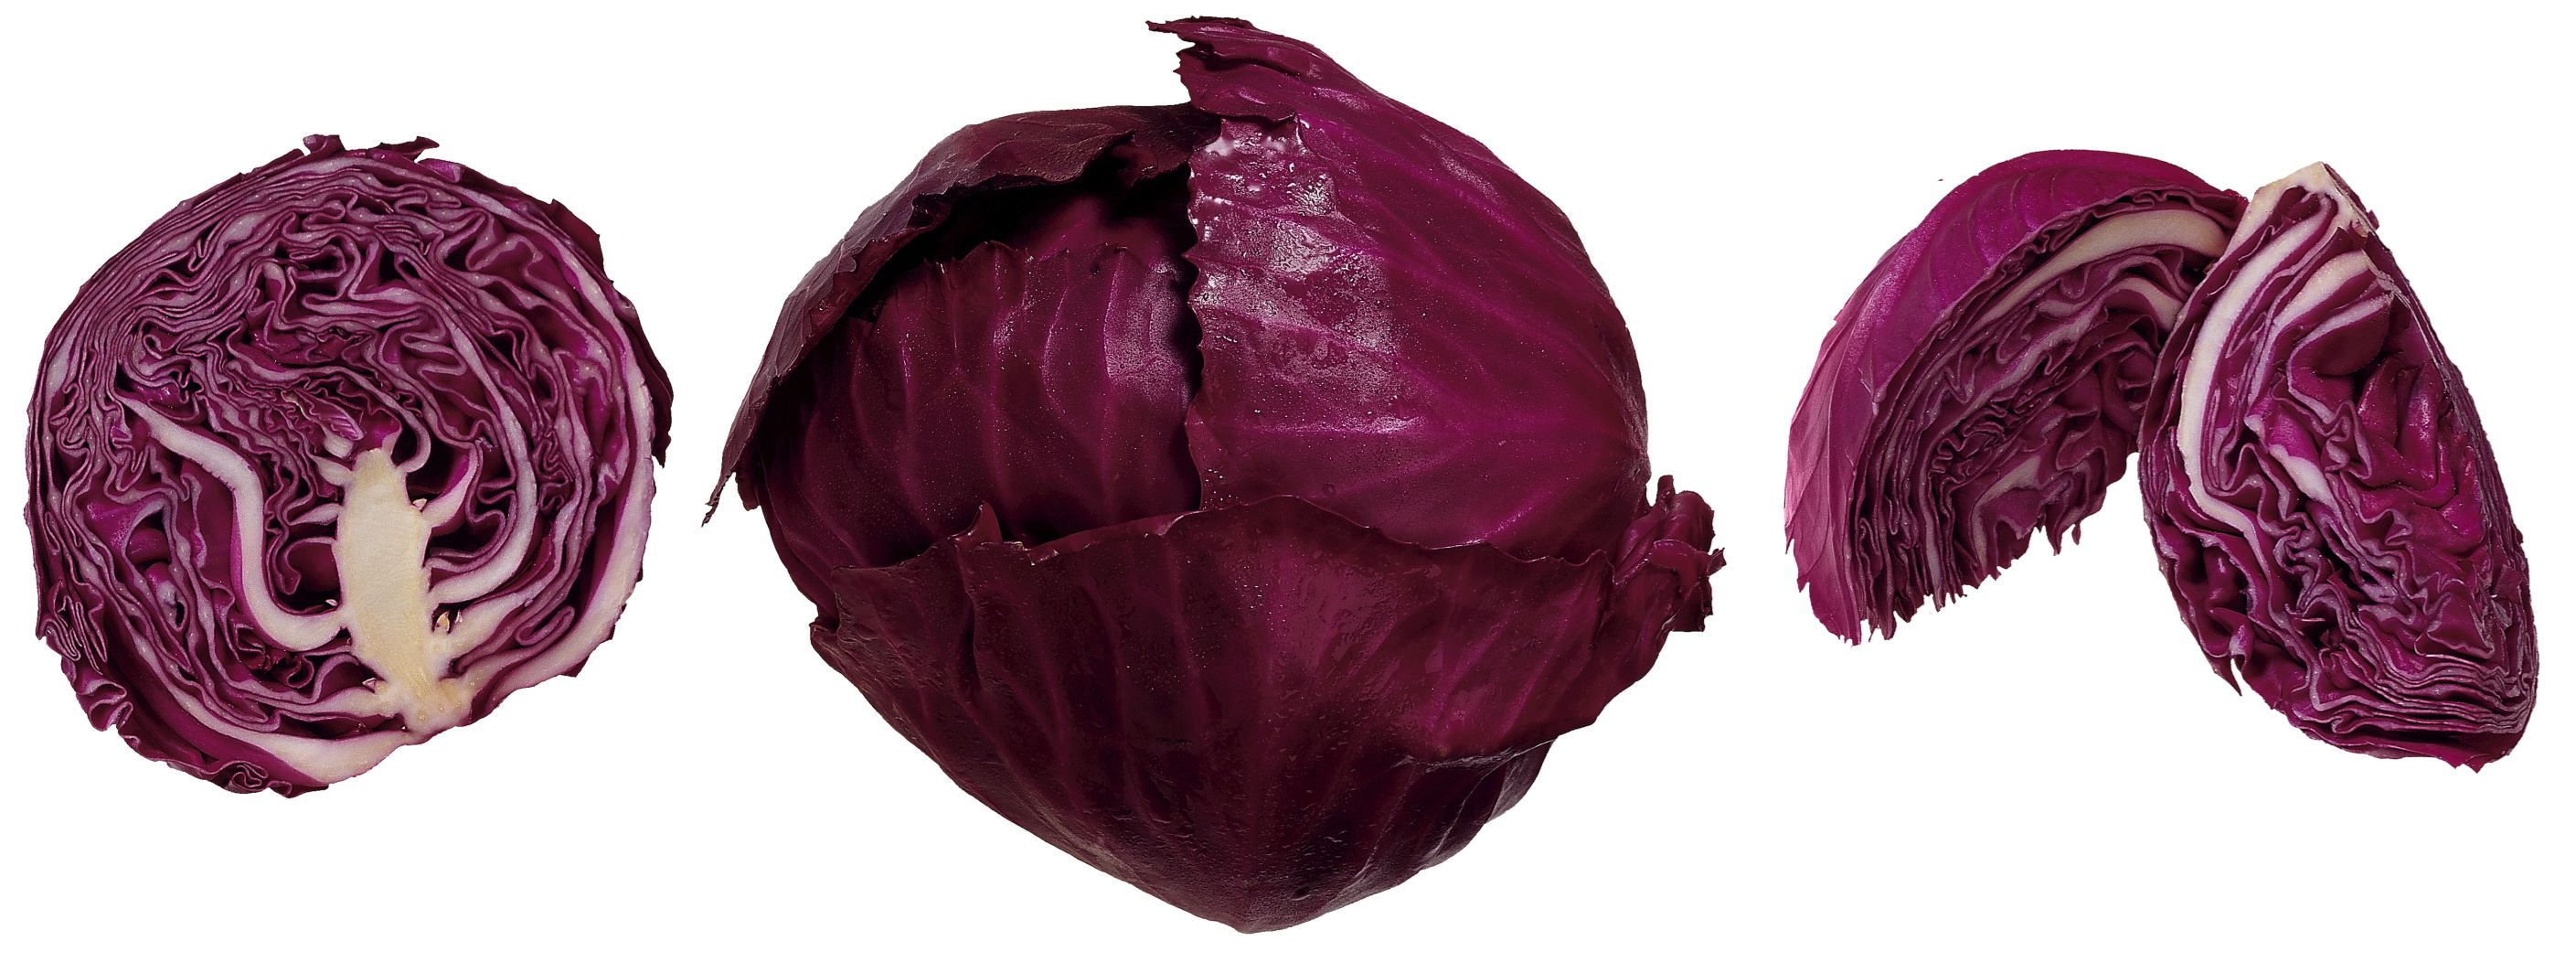 Cabbage Chemistry